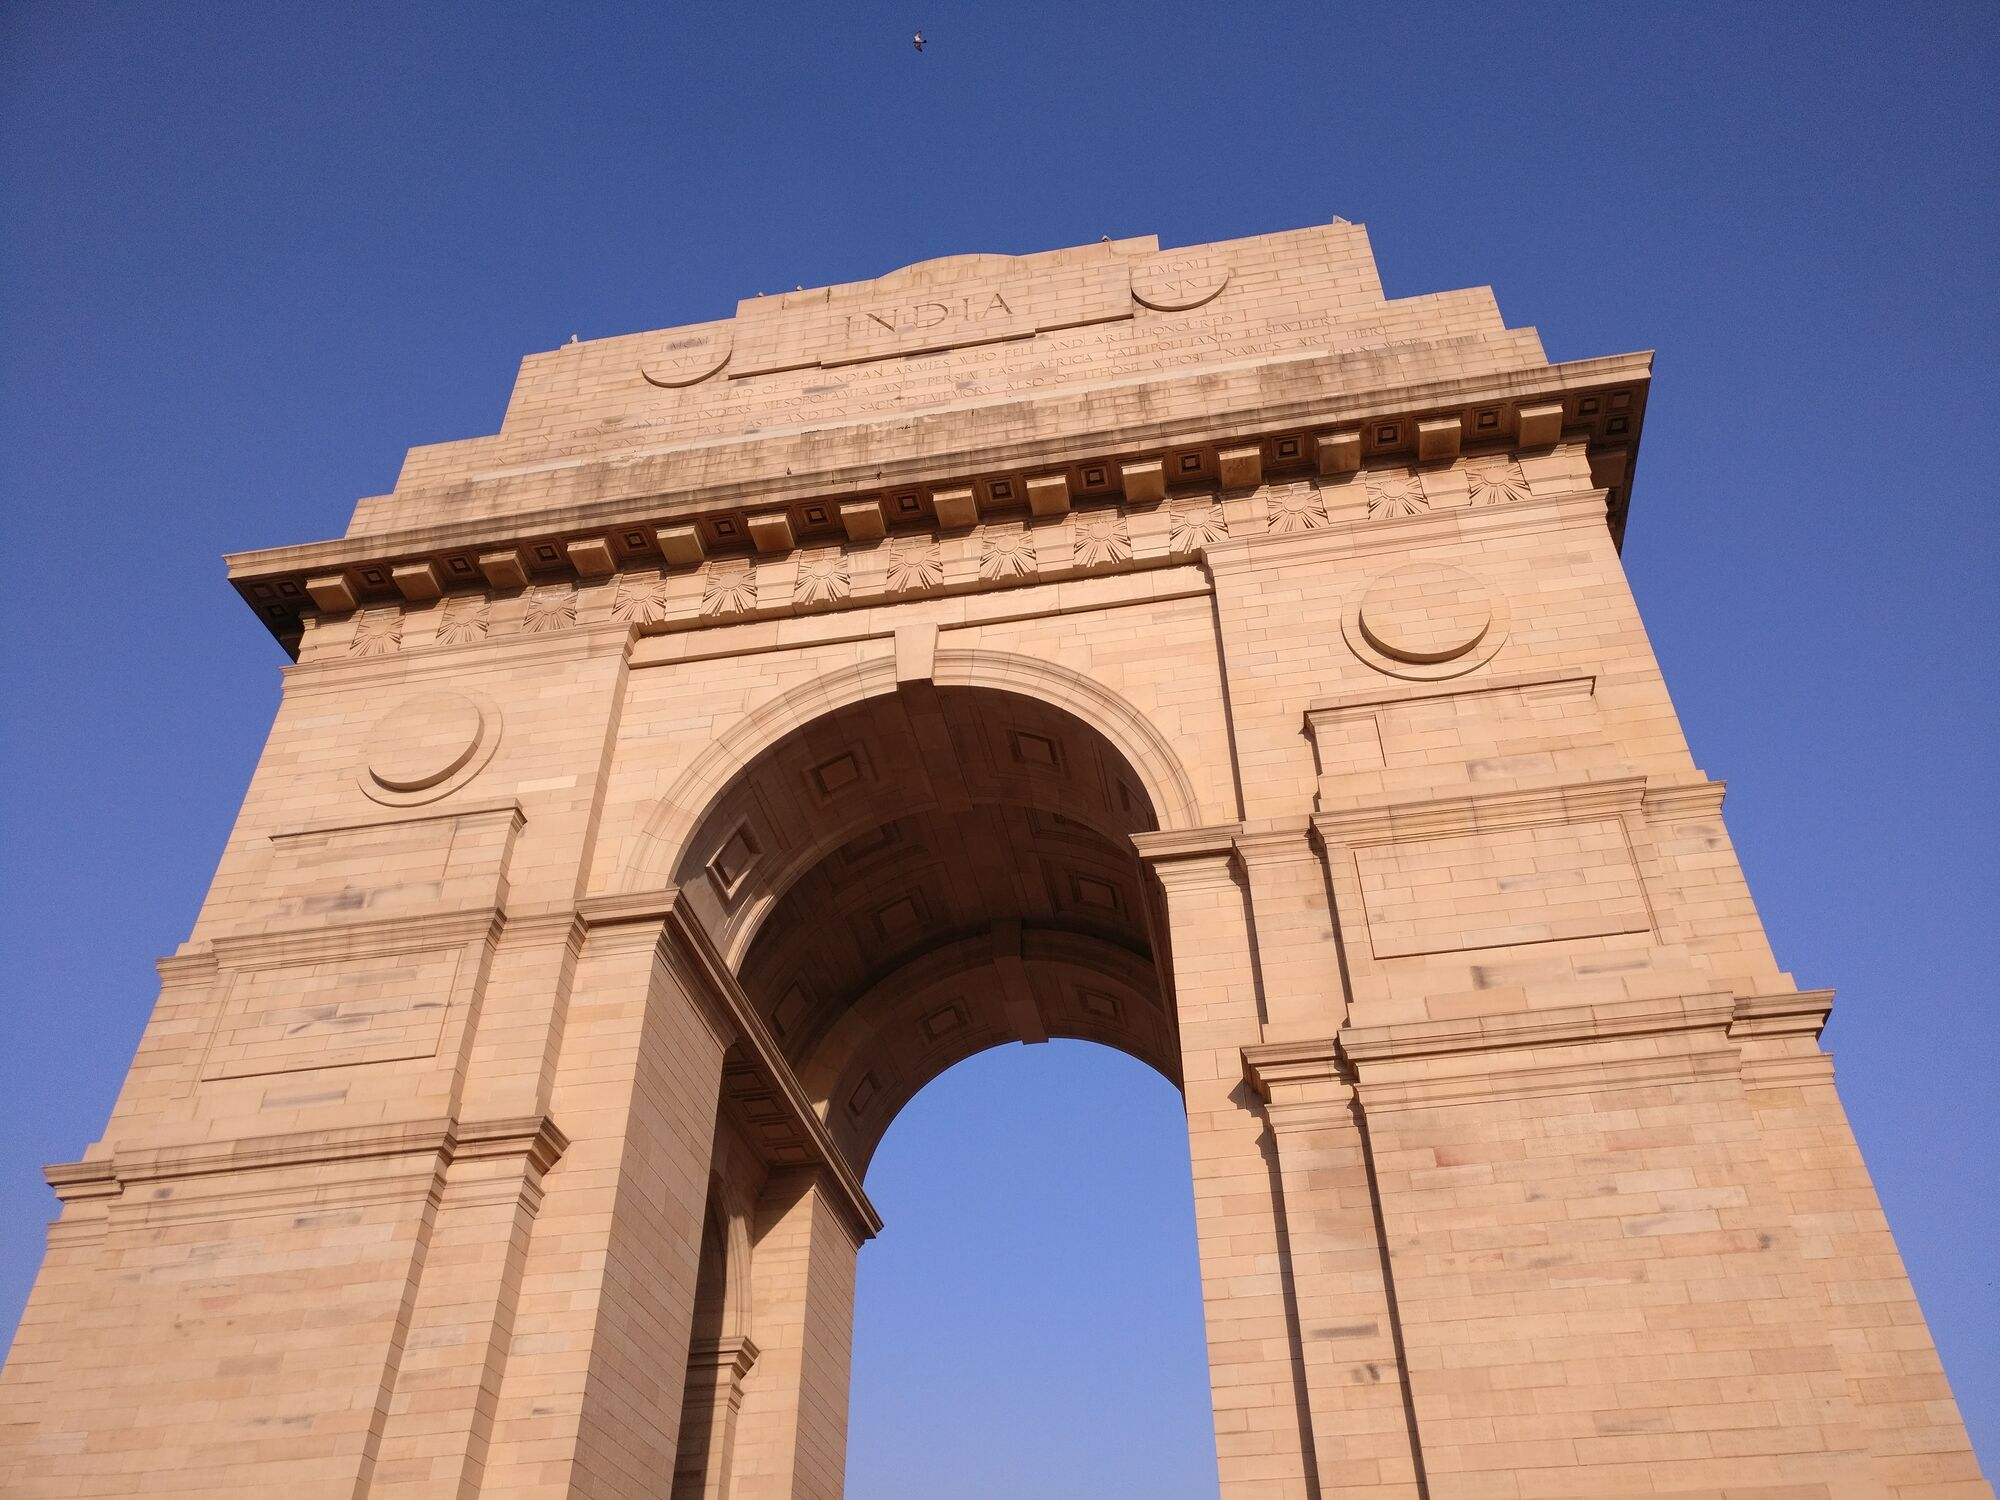 India Gate, is a war memorial located astride the Rajpath, New Delhi